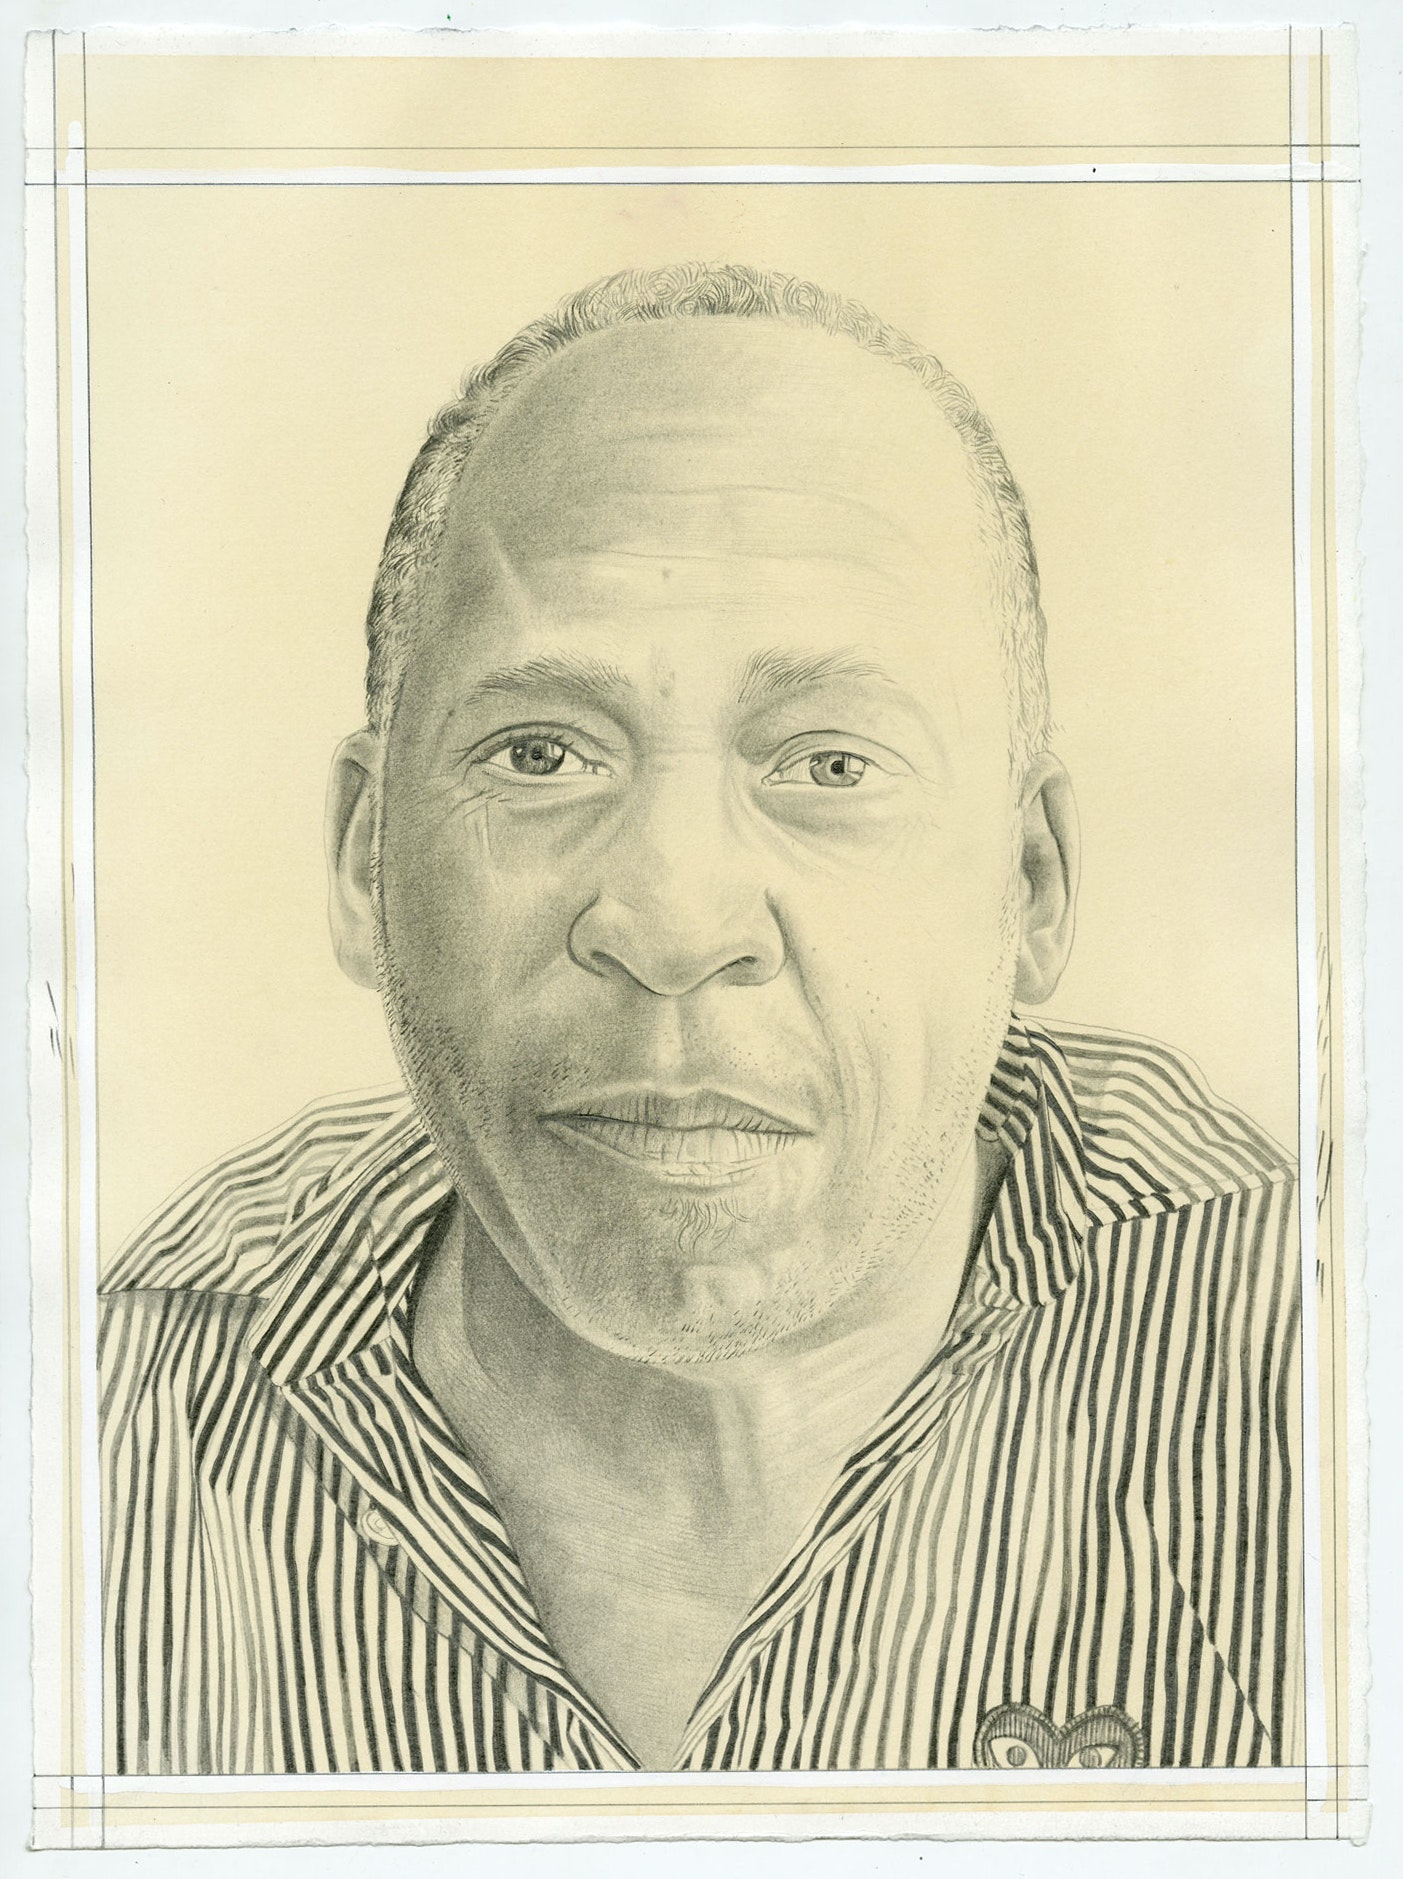 Portrait of Henry Taylor, pencil on paper by Phong Bui.